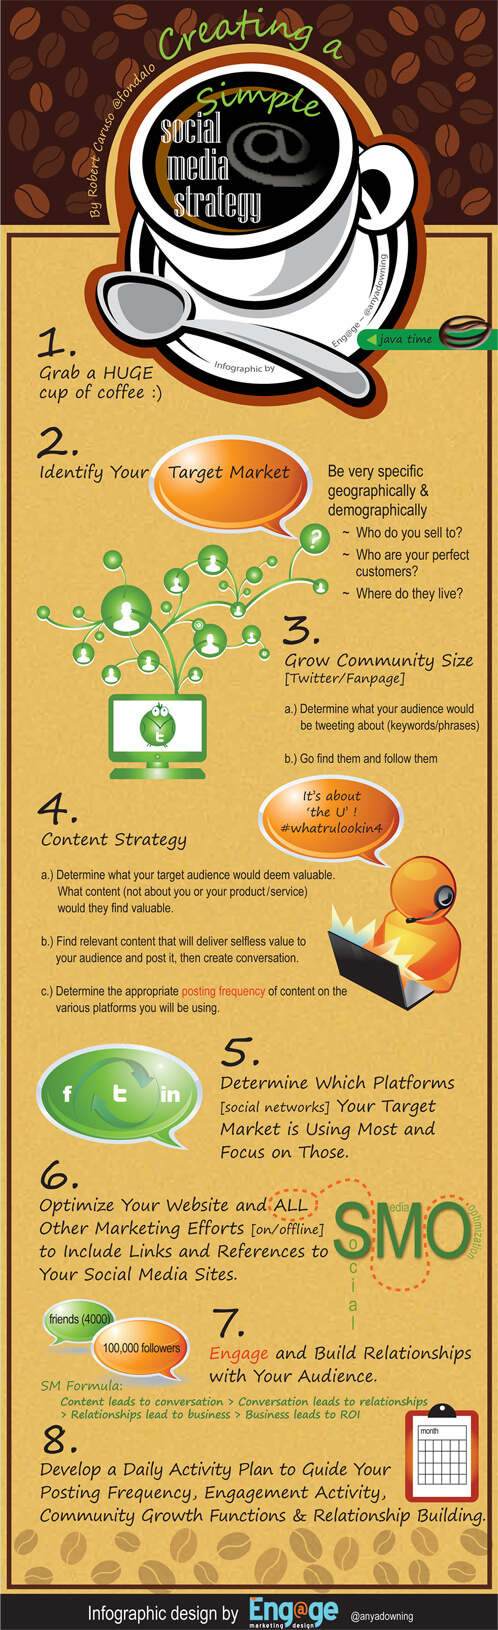 how to create a simple social media strategy